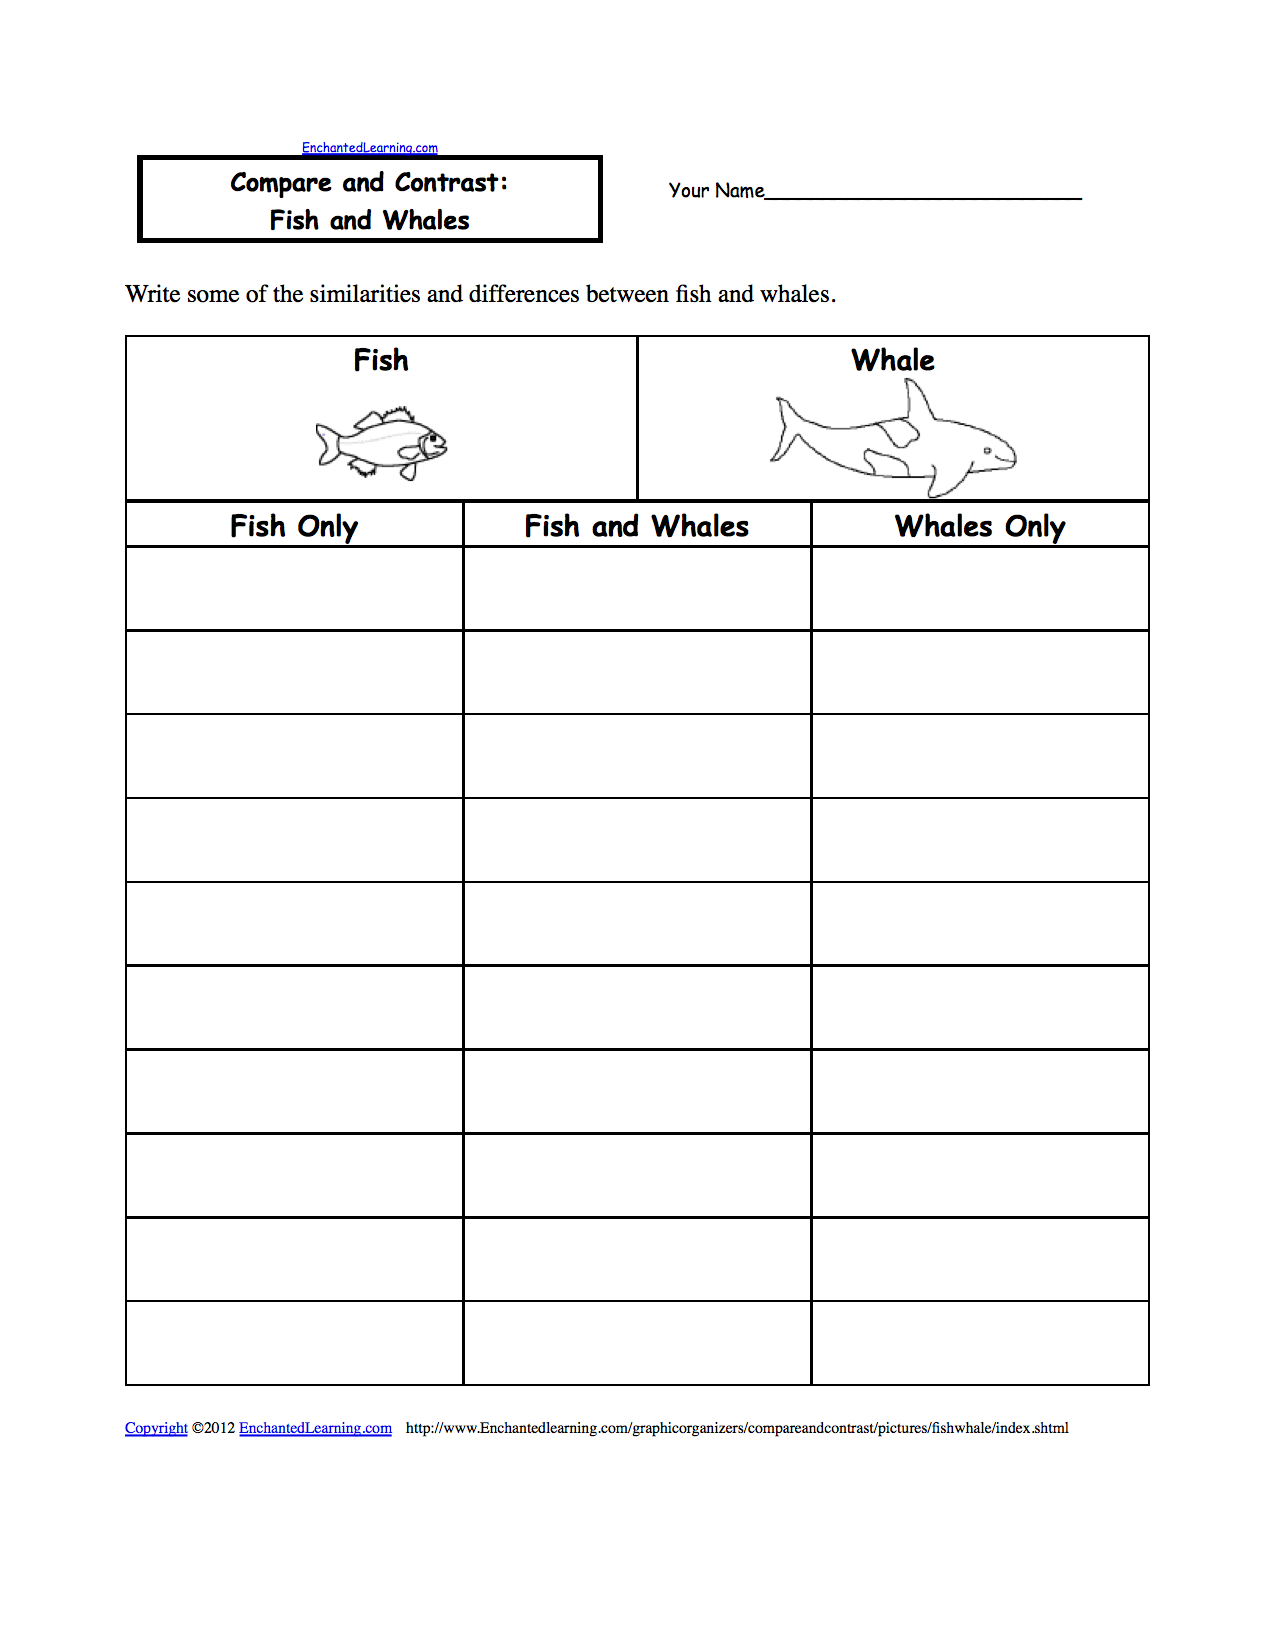 Compare And Contrast Graphic Organizers - Enchantedlearning - Free Printable Compare And Contrast Graphic Organizer